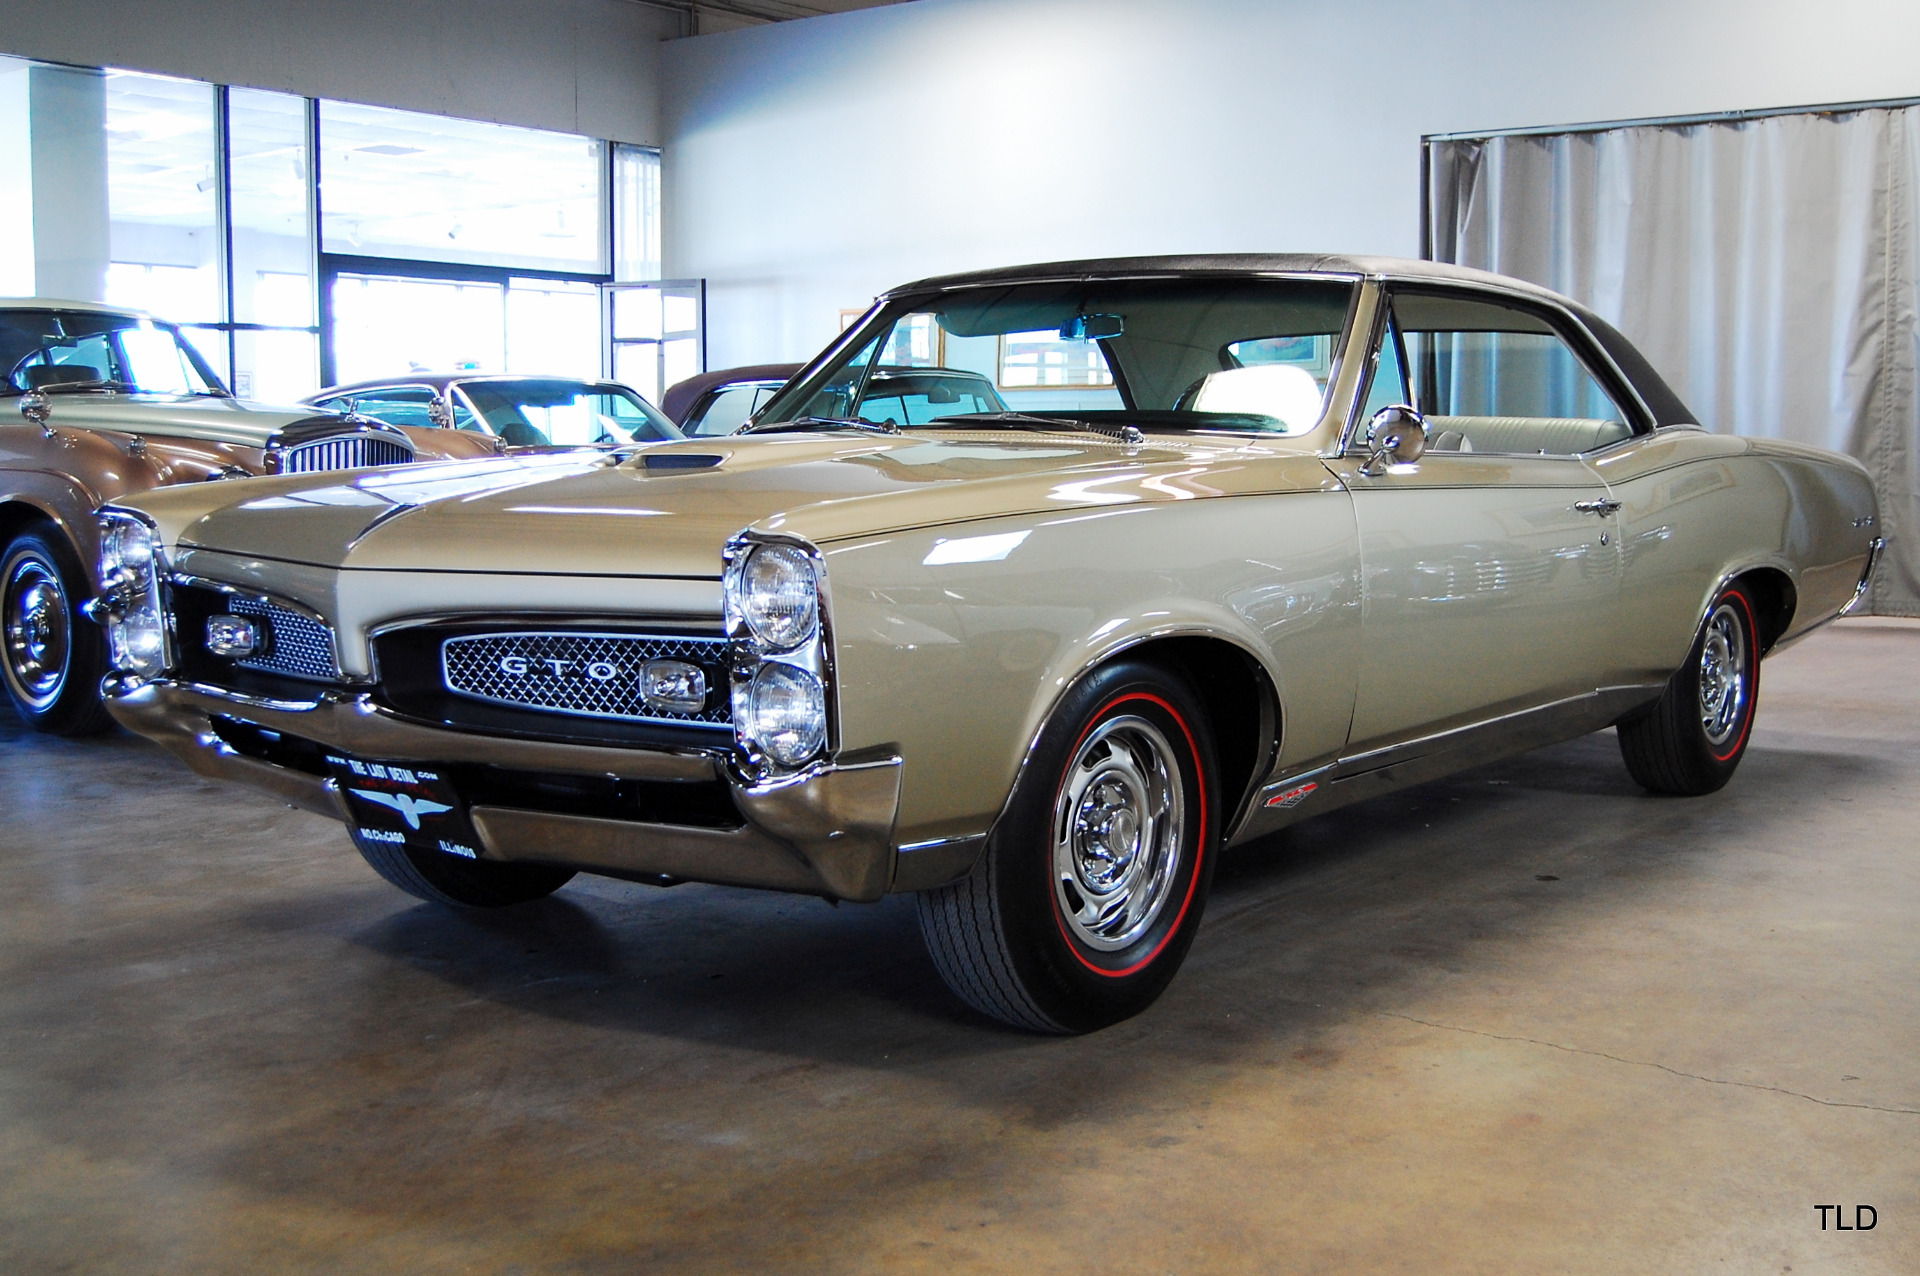 1967 pontiac gto used pontiac gto for sale in north chicago illinois. Black Bedroom Furniture Sets. Home Design Ideas